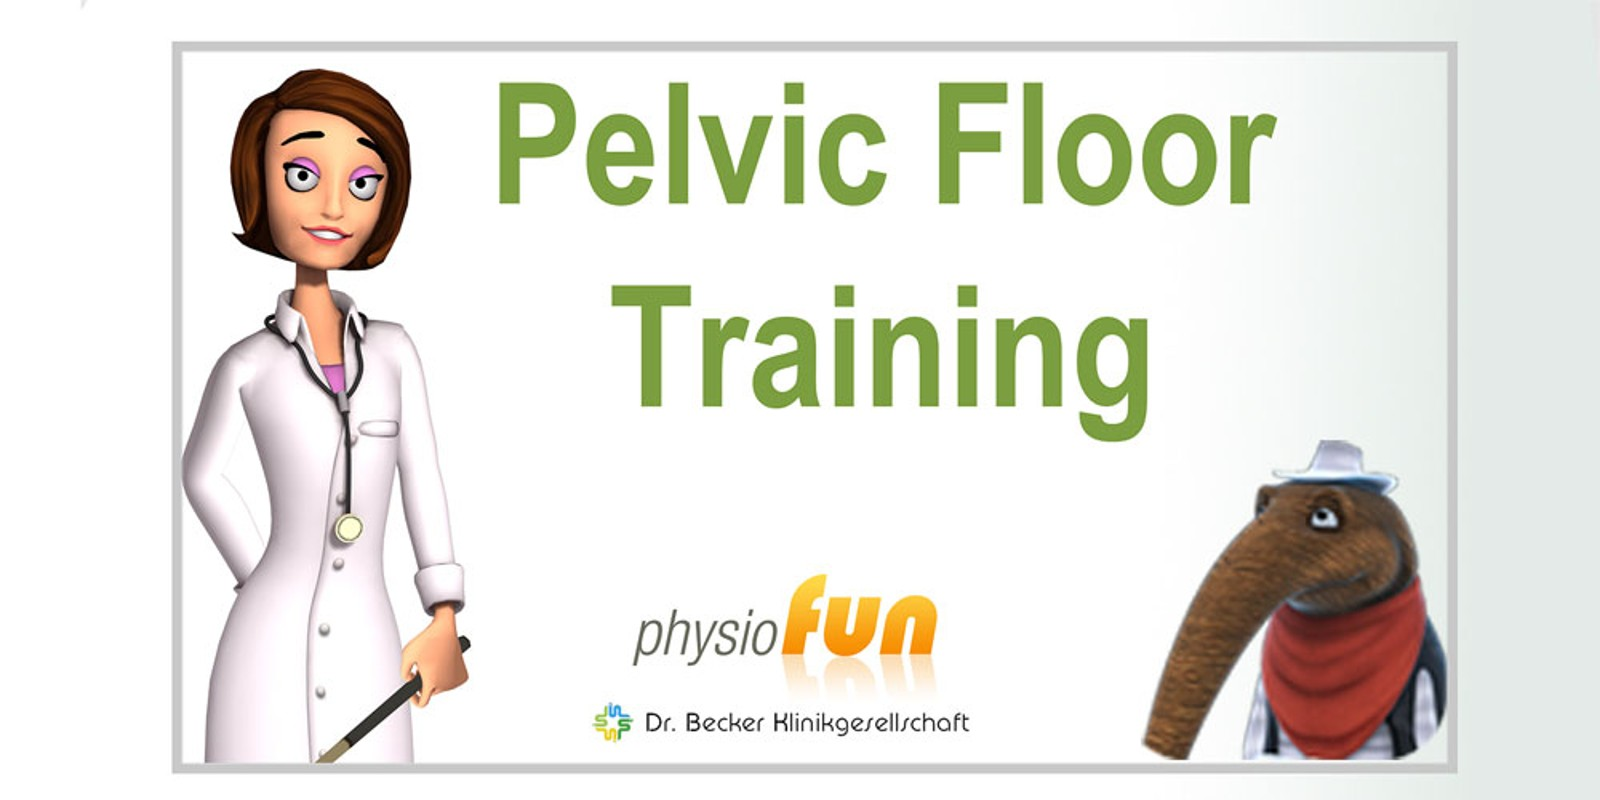 Pelvic Floor Training Physiofun